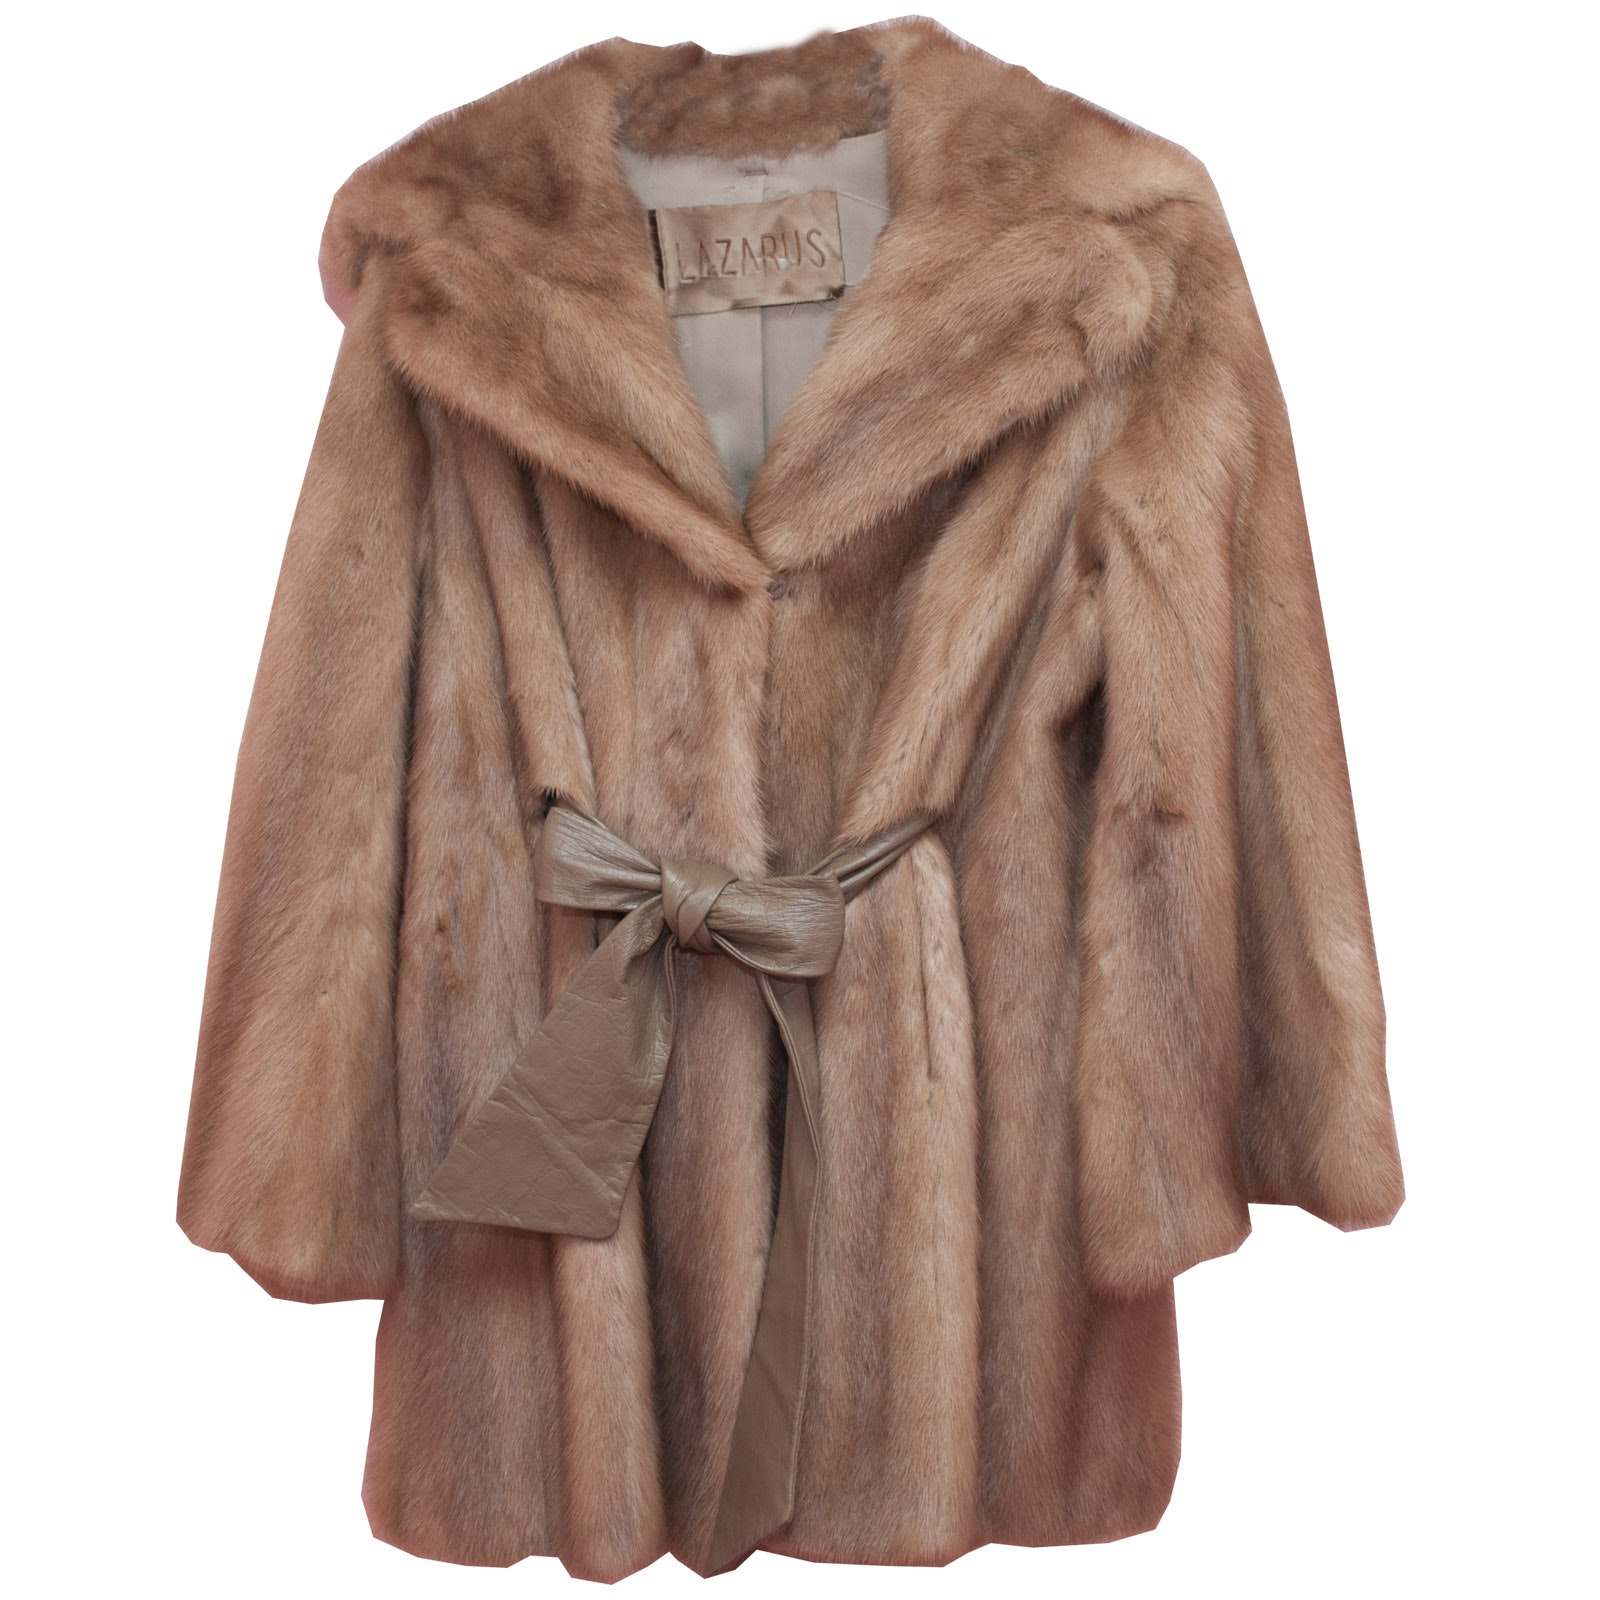 Lazarus Mink Fur and Leather Vintage Coat